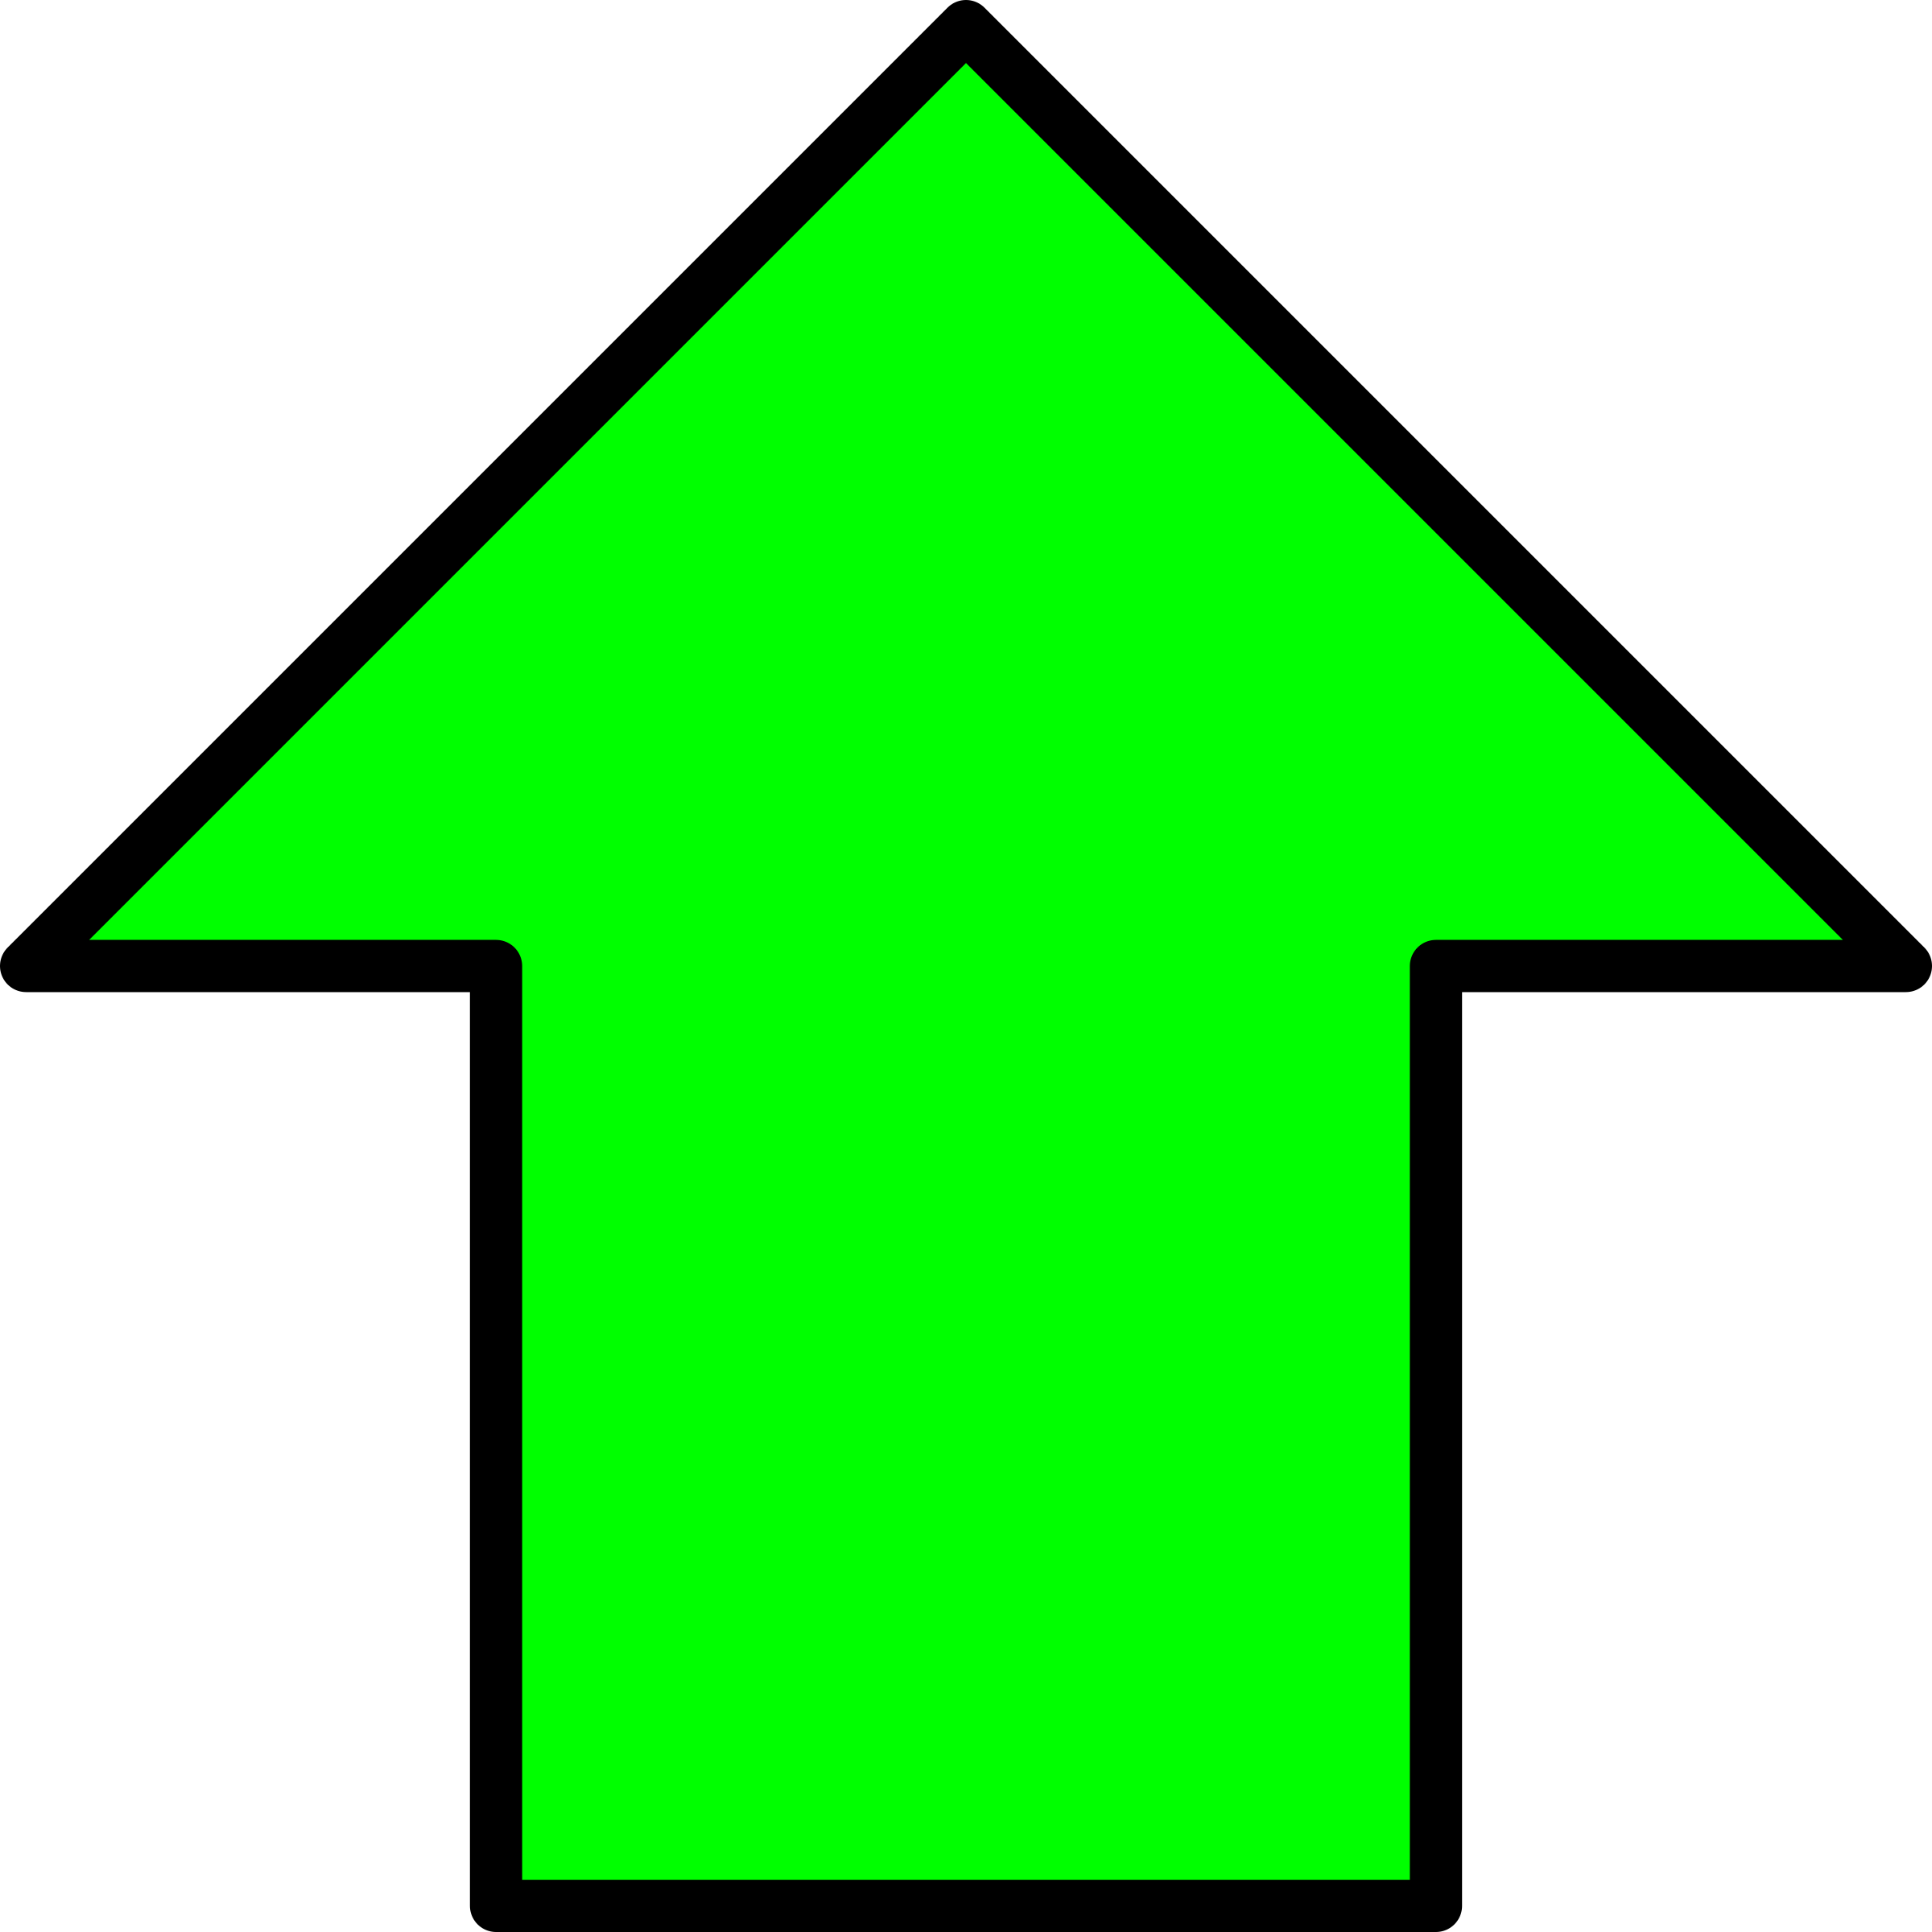 Money green arrow clipart png freeuse download Upvote upvote for money upvote; upvote - Album on Imgur png freeuse download